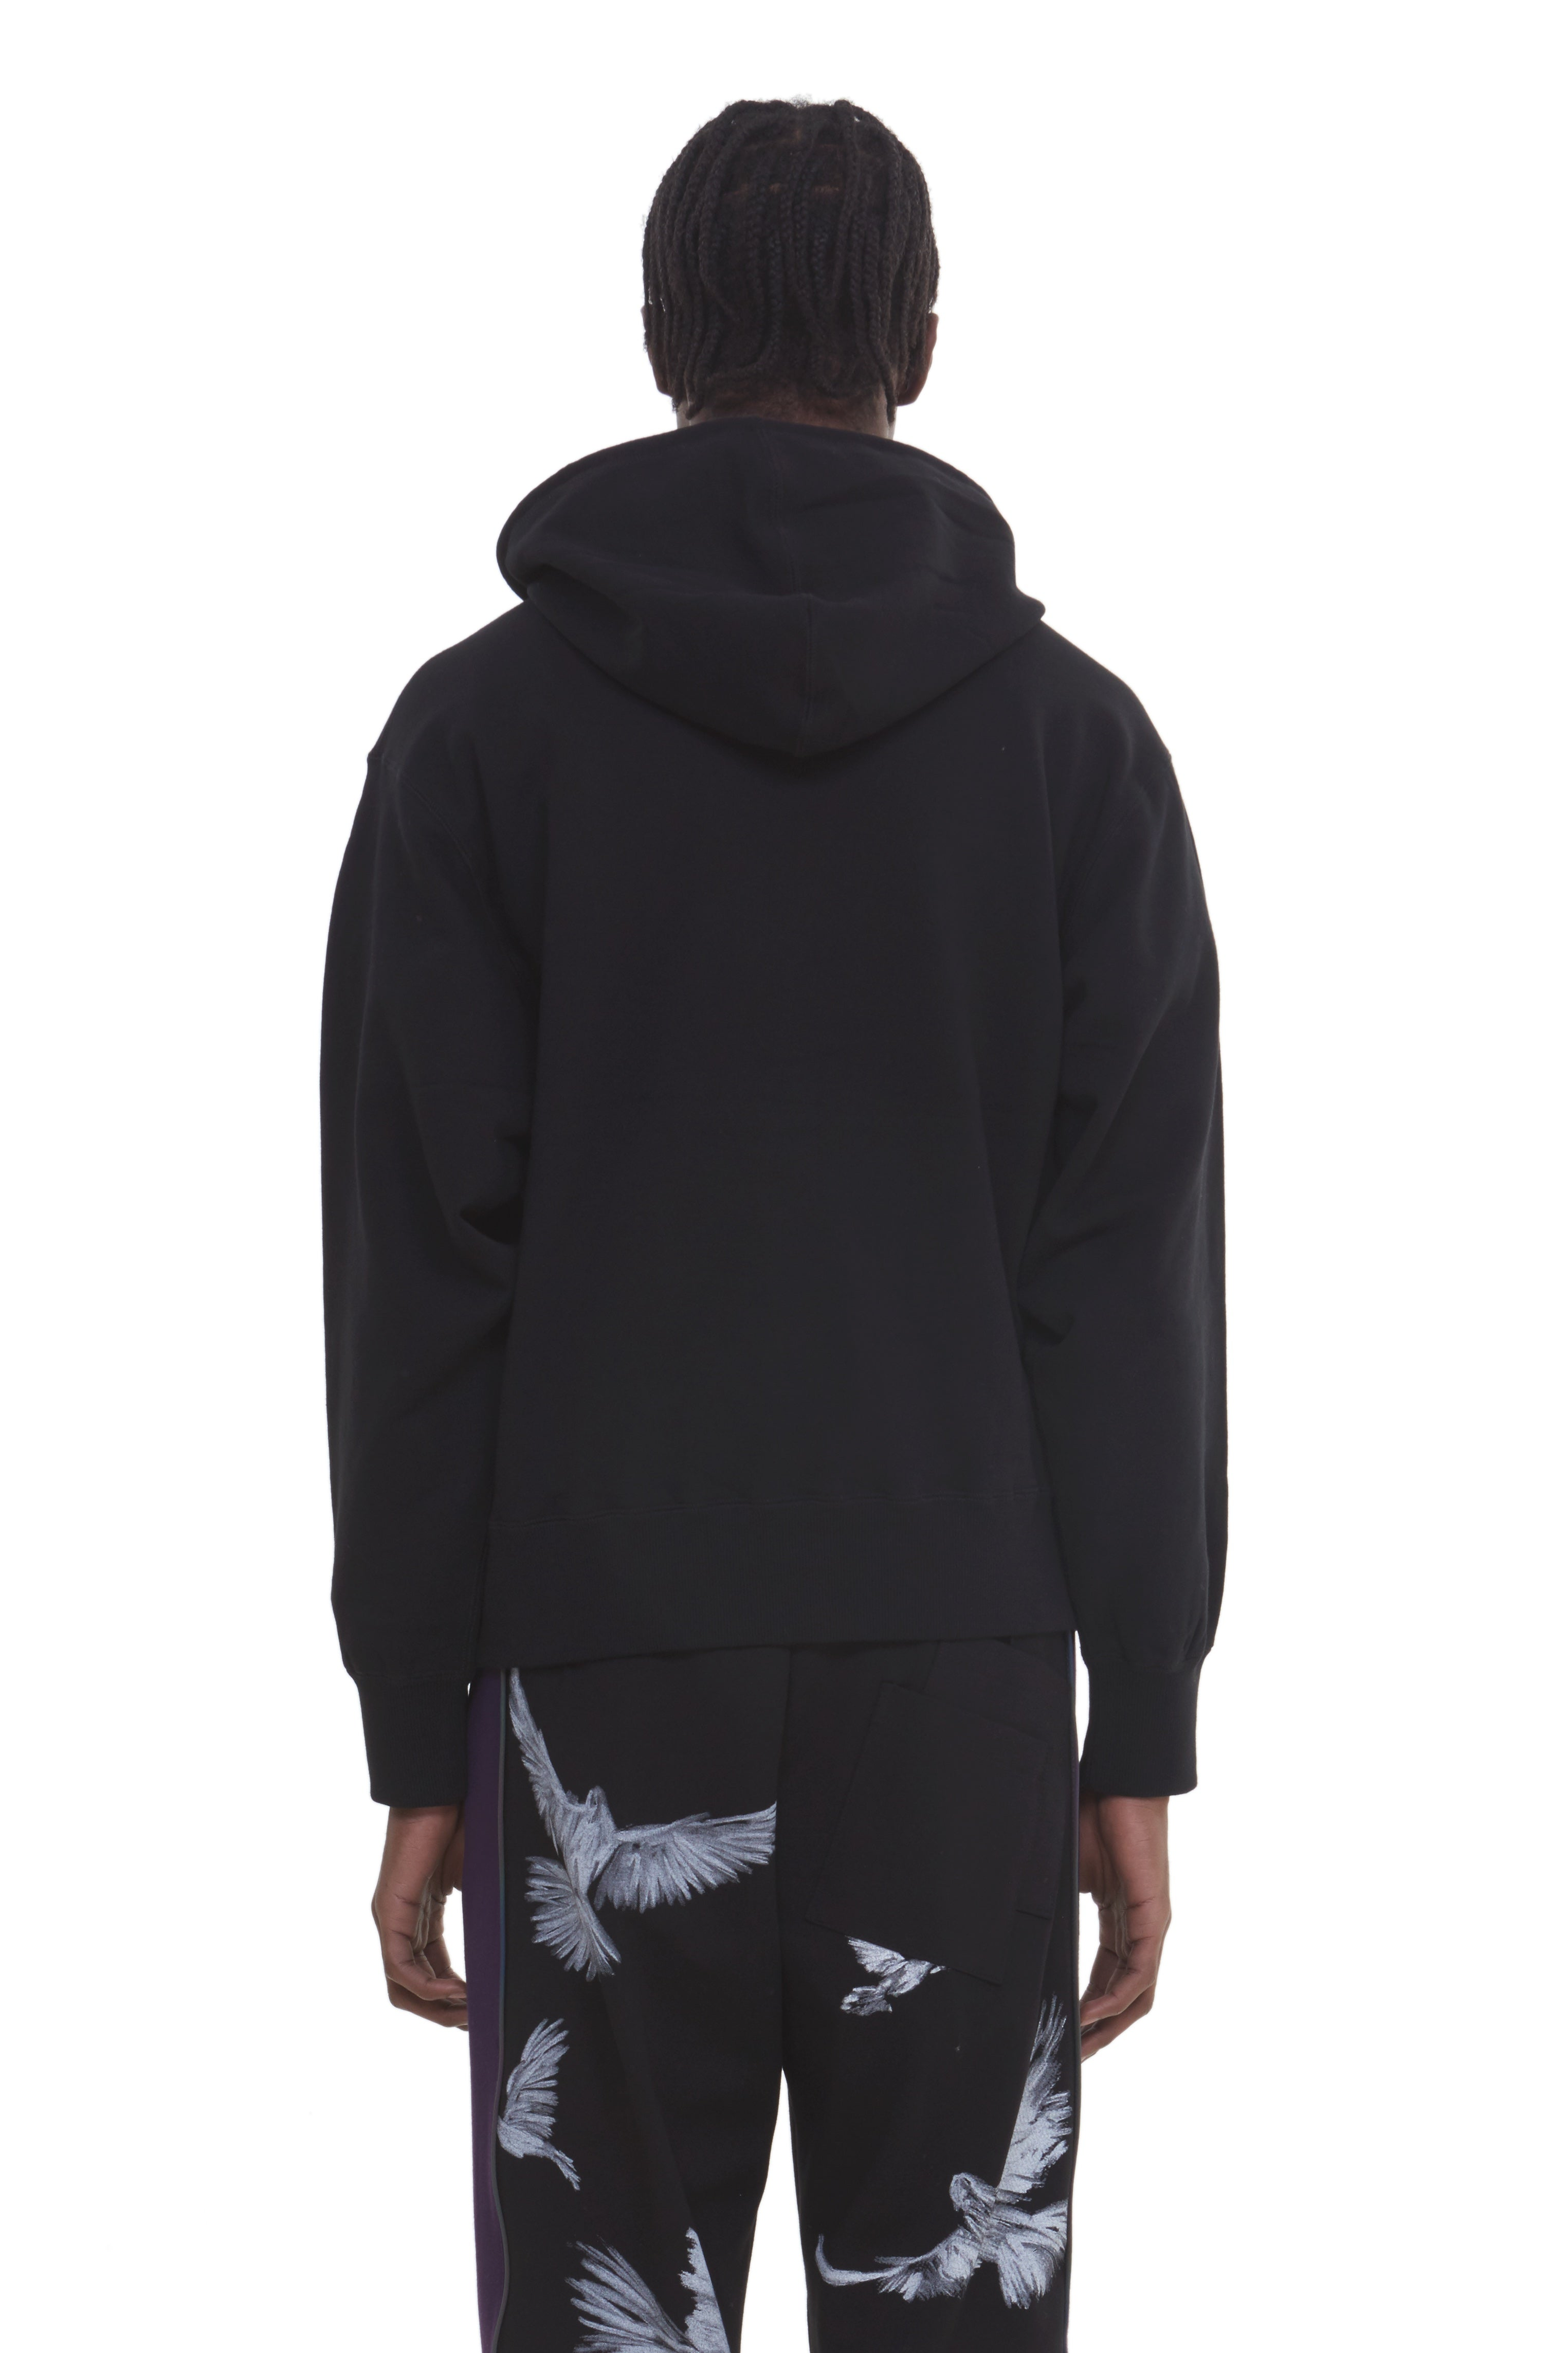 MARIA RELEASED BIRD HOODED SWEATER